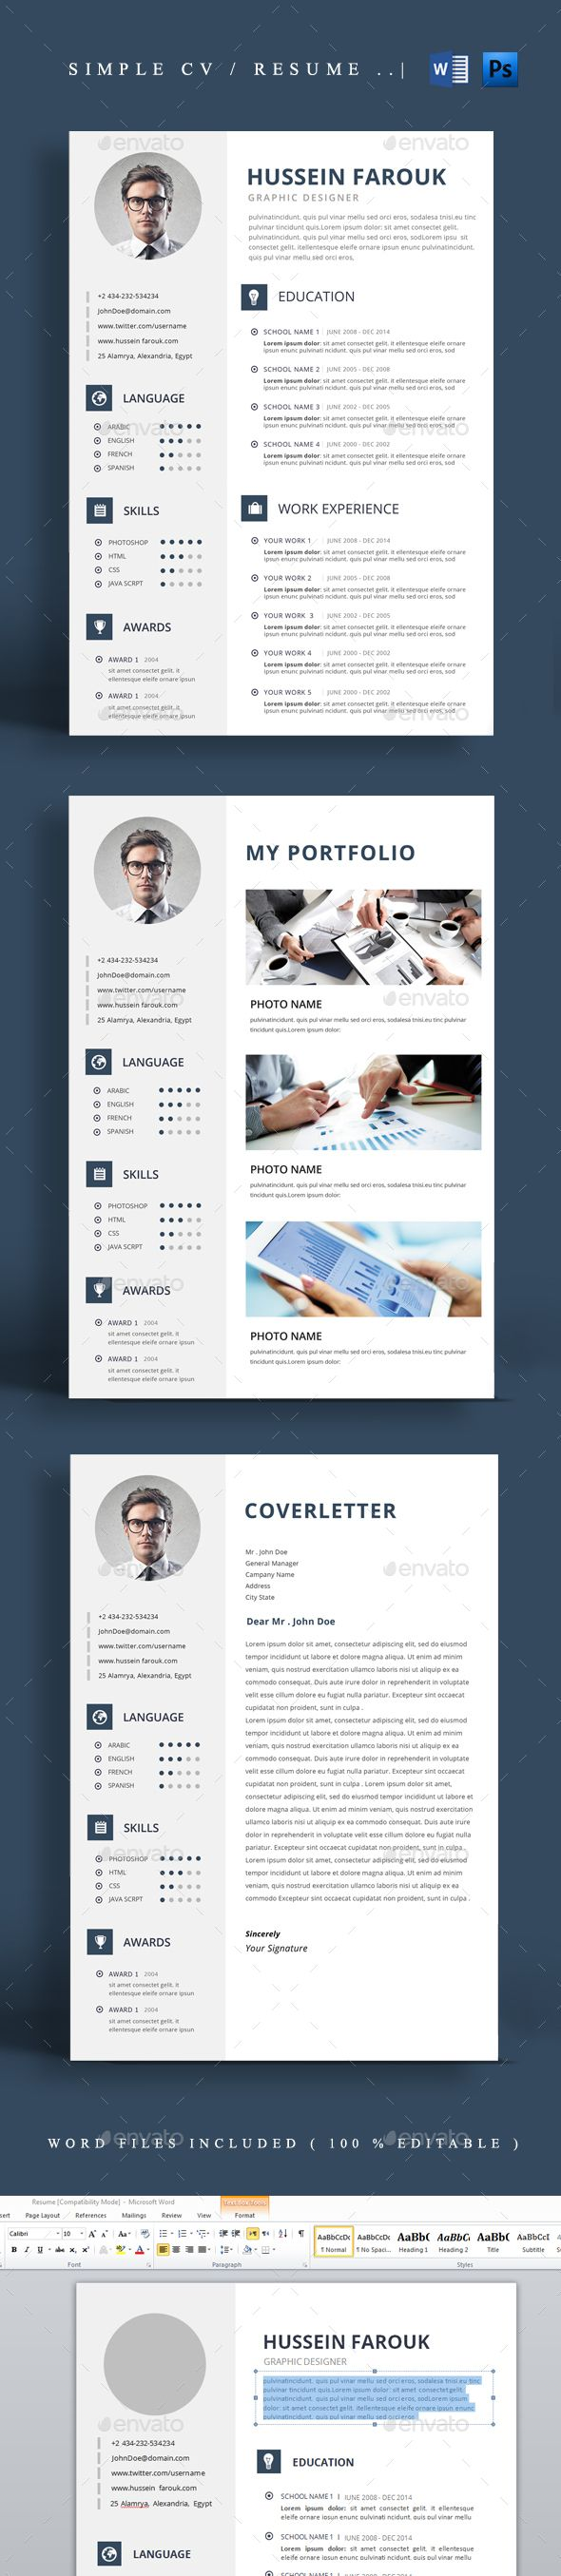 Simple Cv / Resume Template PSD. Download here: http://graphicriver.net/item/simple-cv-resume/14762647?ref=ksioks